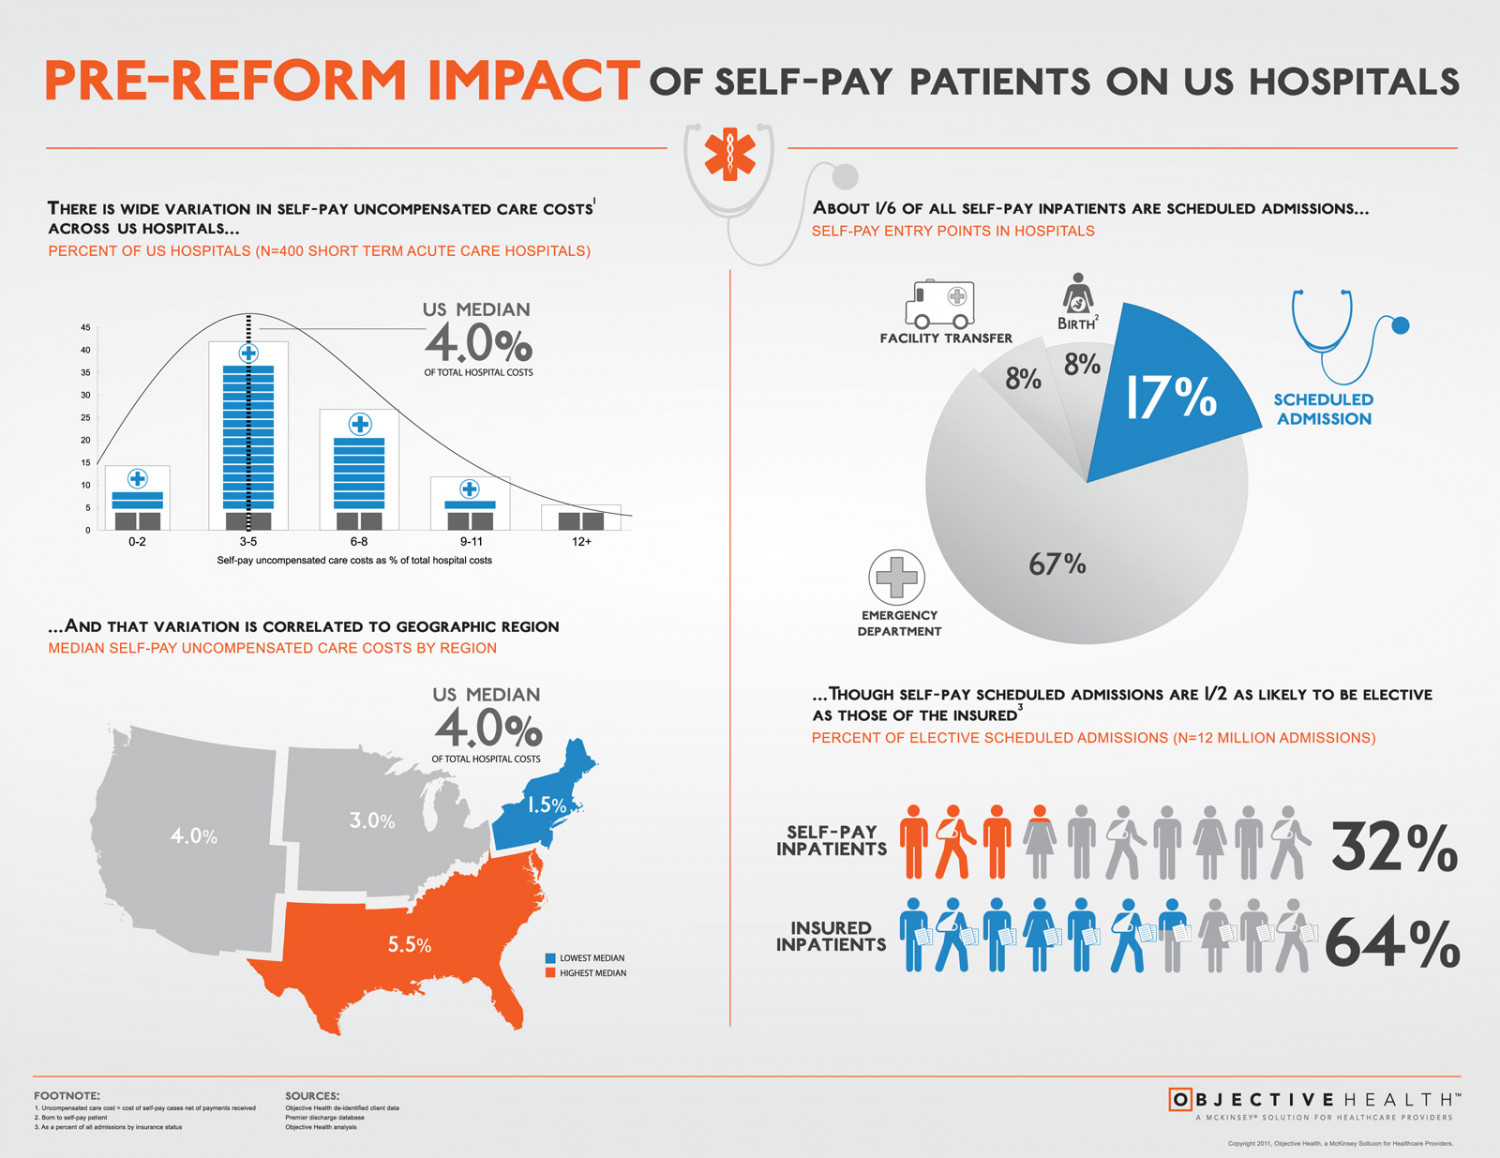 Pre-Reform Impact of Self-Pay Patients on US Hospitals Infographic